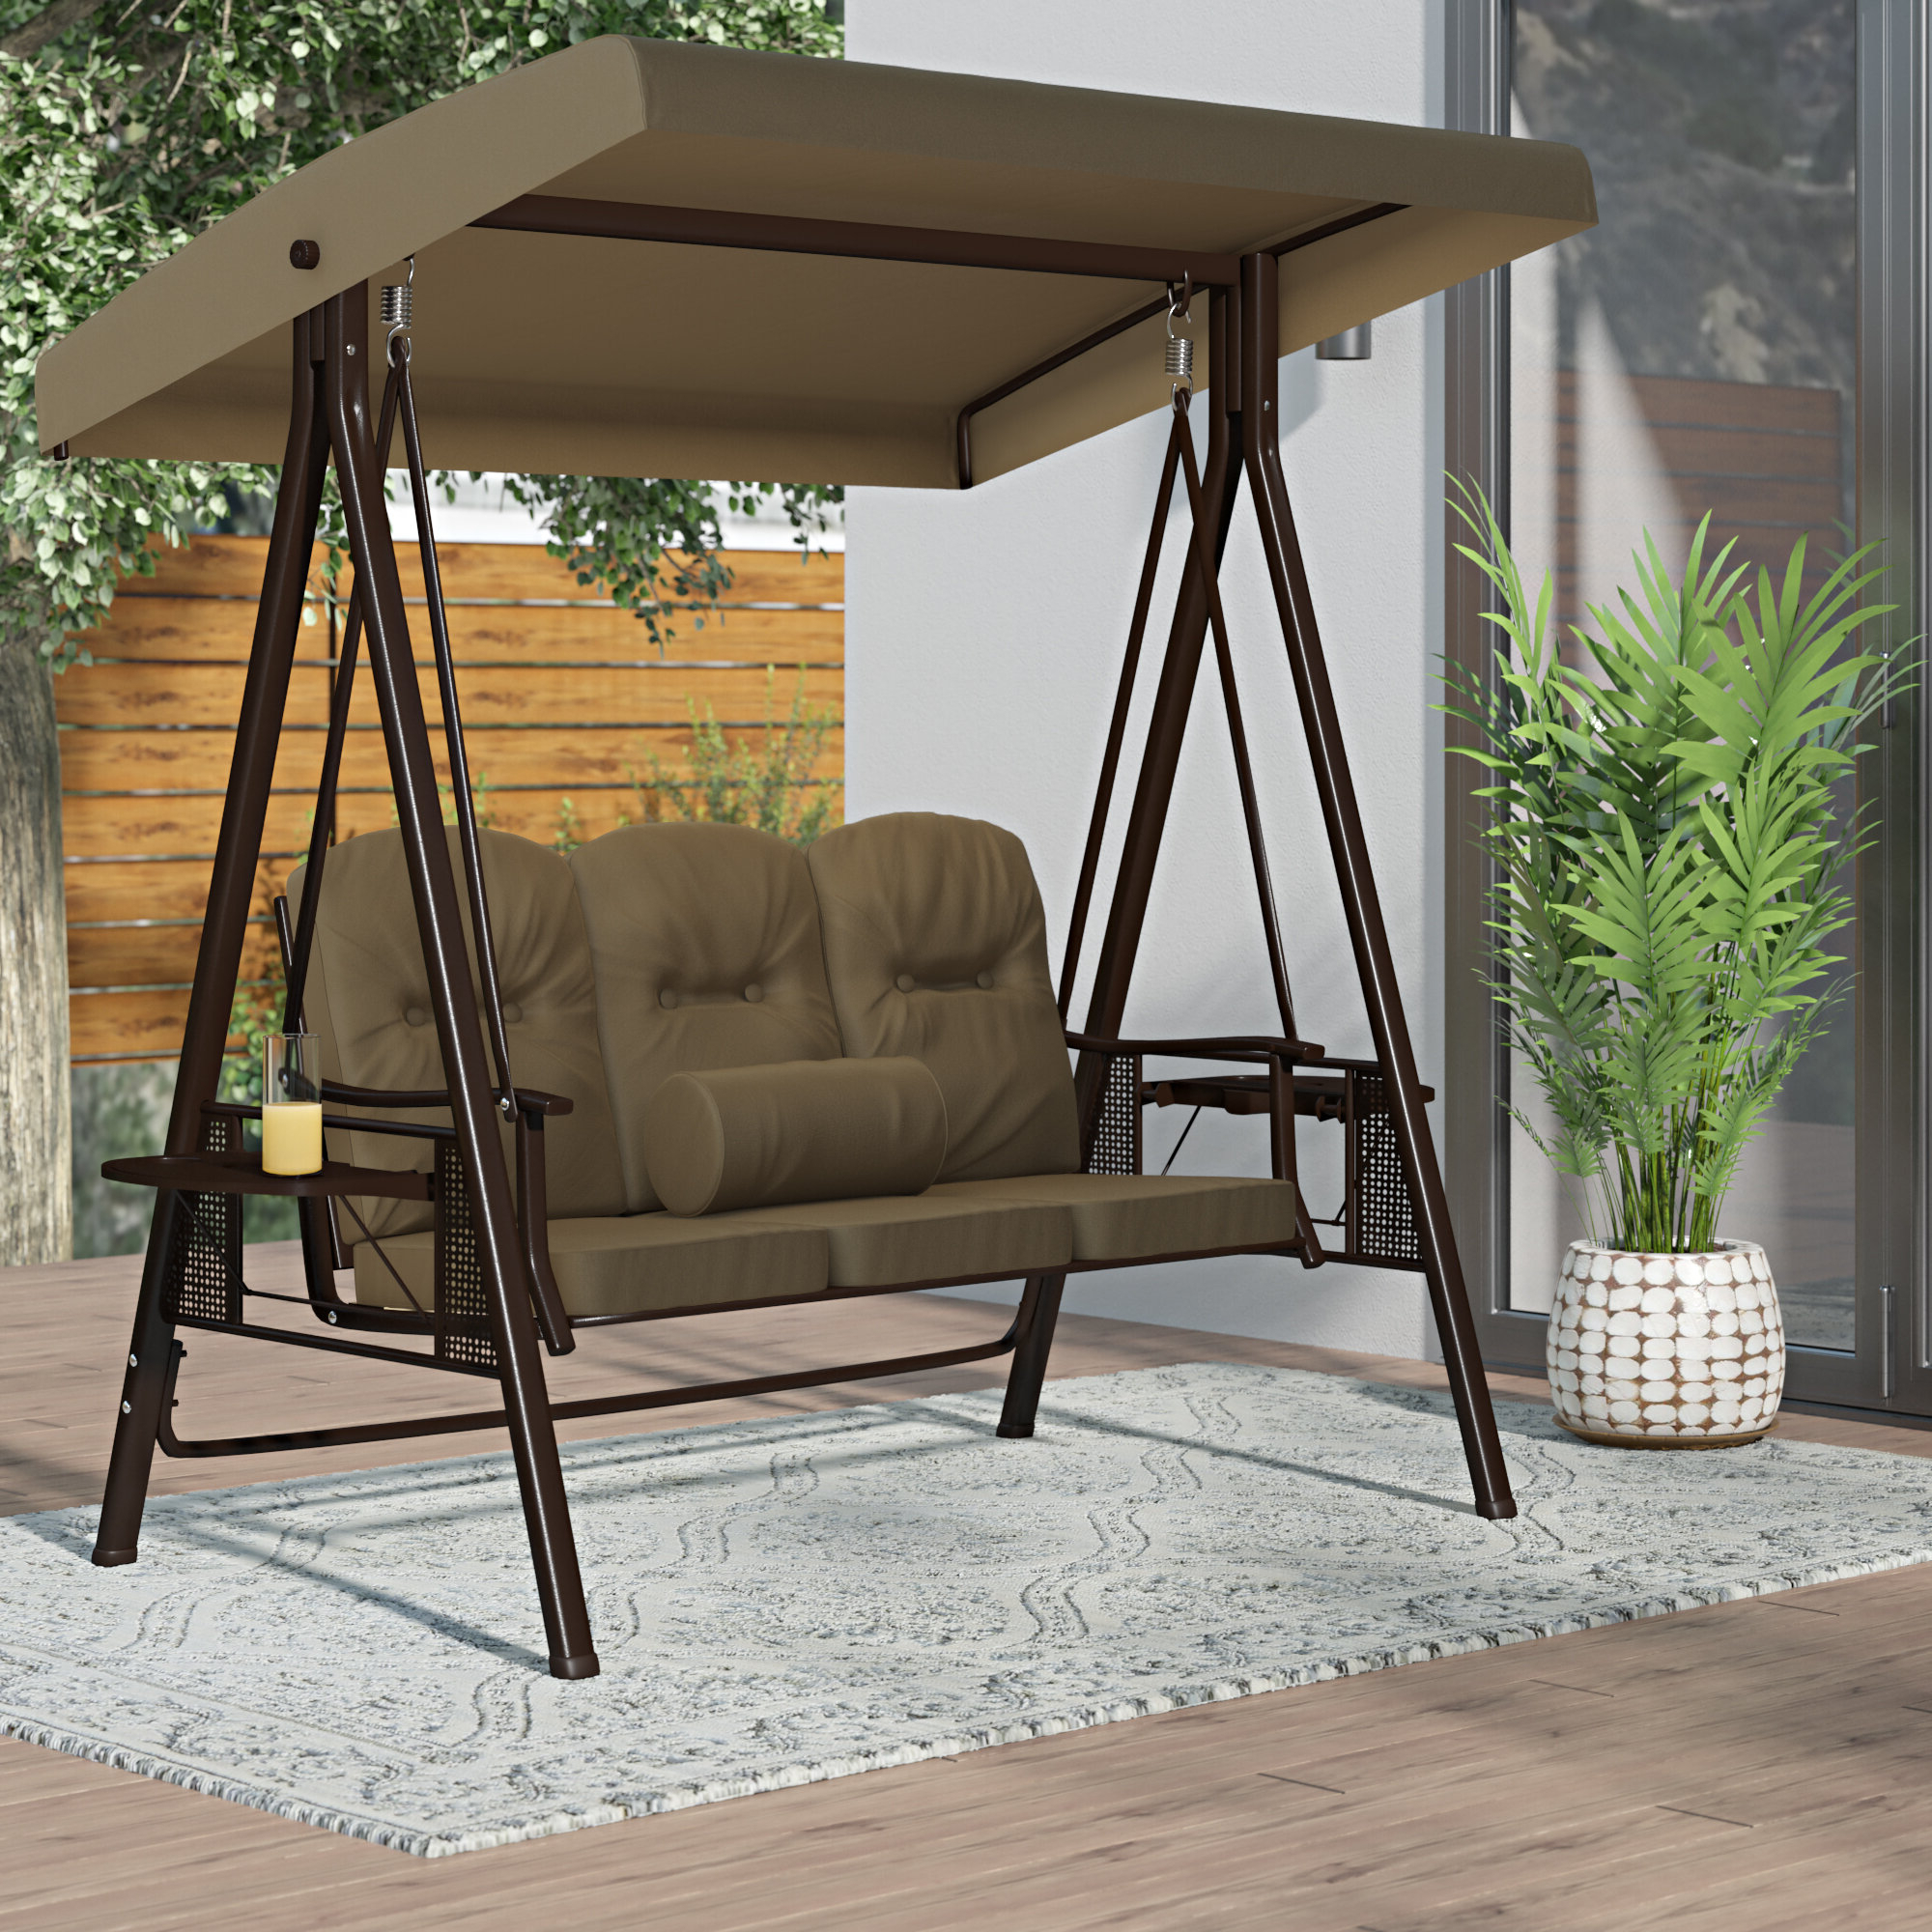 Most Up To Date Folkston Outdoor Canopy Porch Swing With Stand Within Canopy Patio Porch Swing With Stand (Gallery 2 of 25)